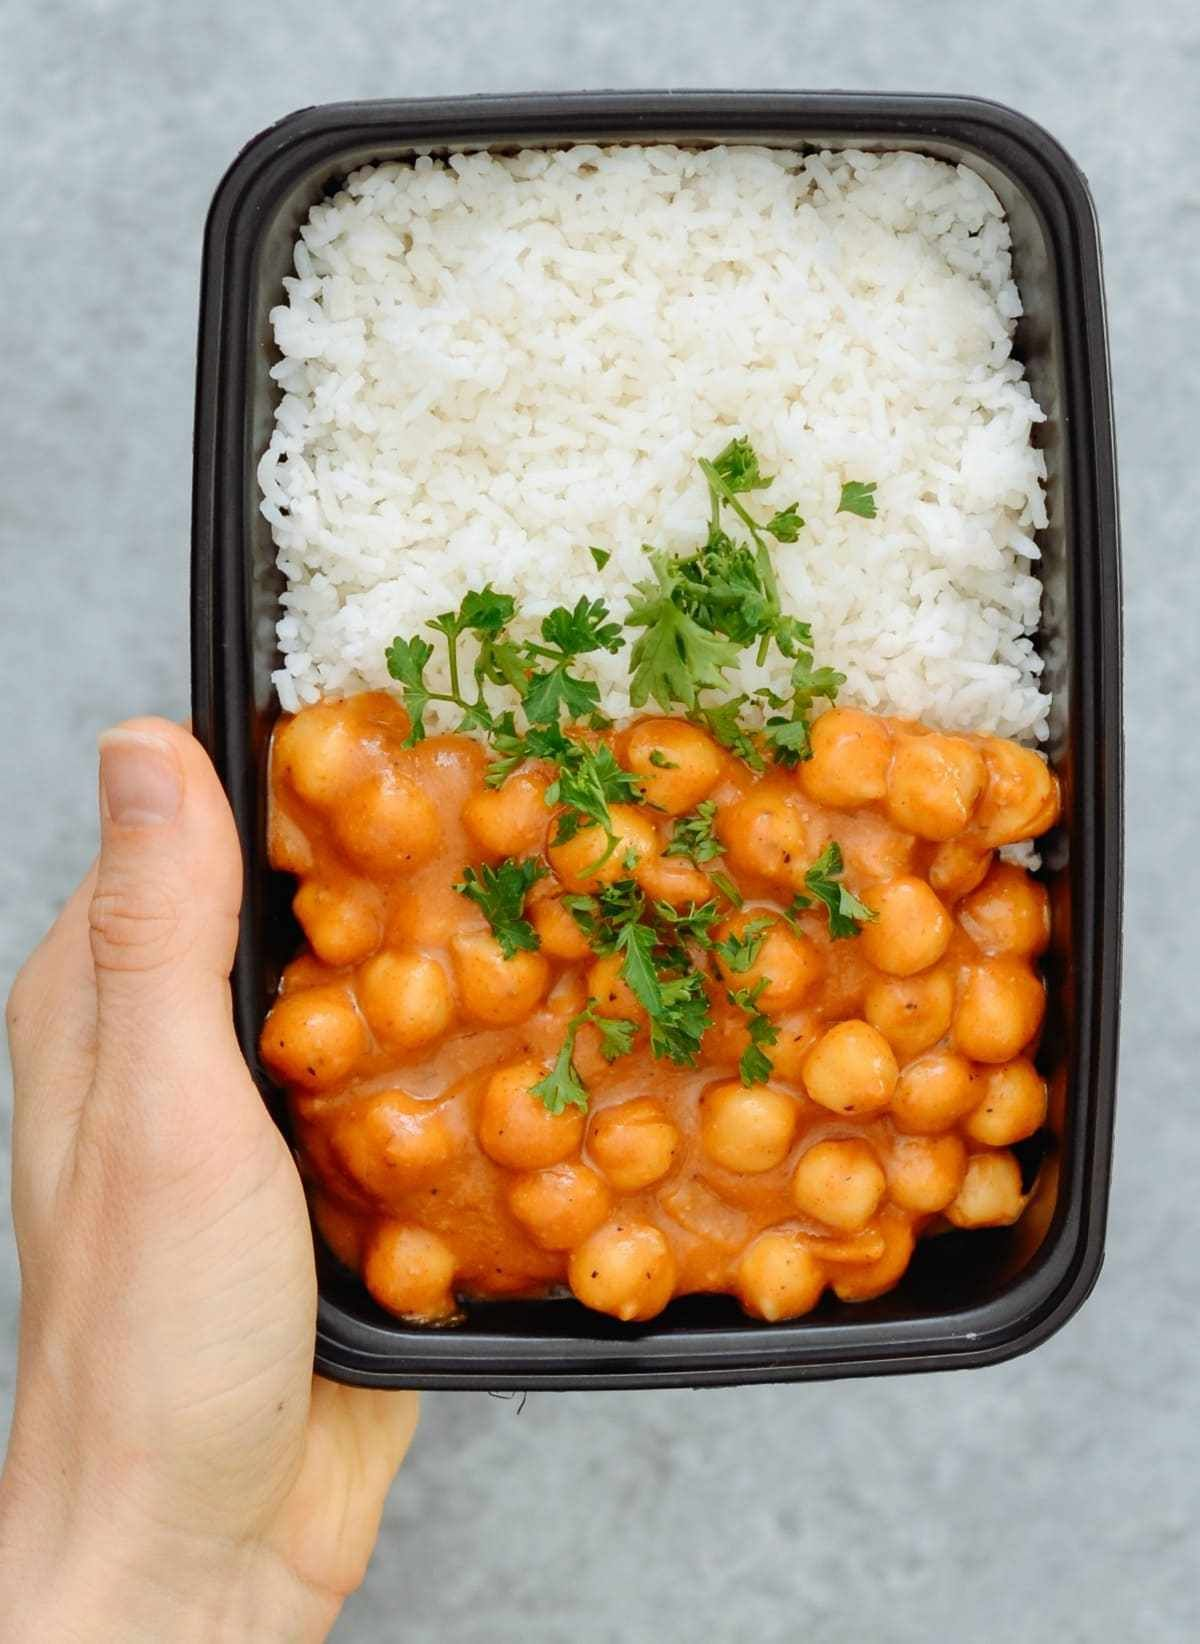 Vegan Chickpea Curry Amp Basmati Rice Is Our Fast Easy And Healthy Take On A Very Popular Recipe Curry Vegan Chickpea Curry Soft Foods Diet Chickpea Curry